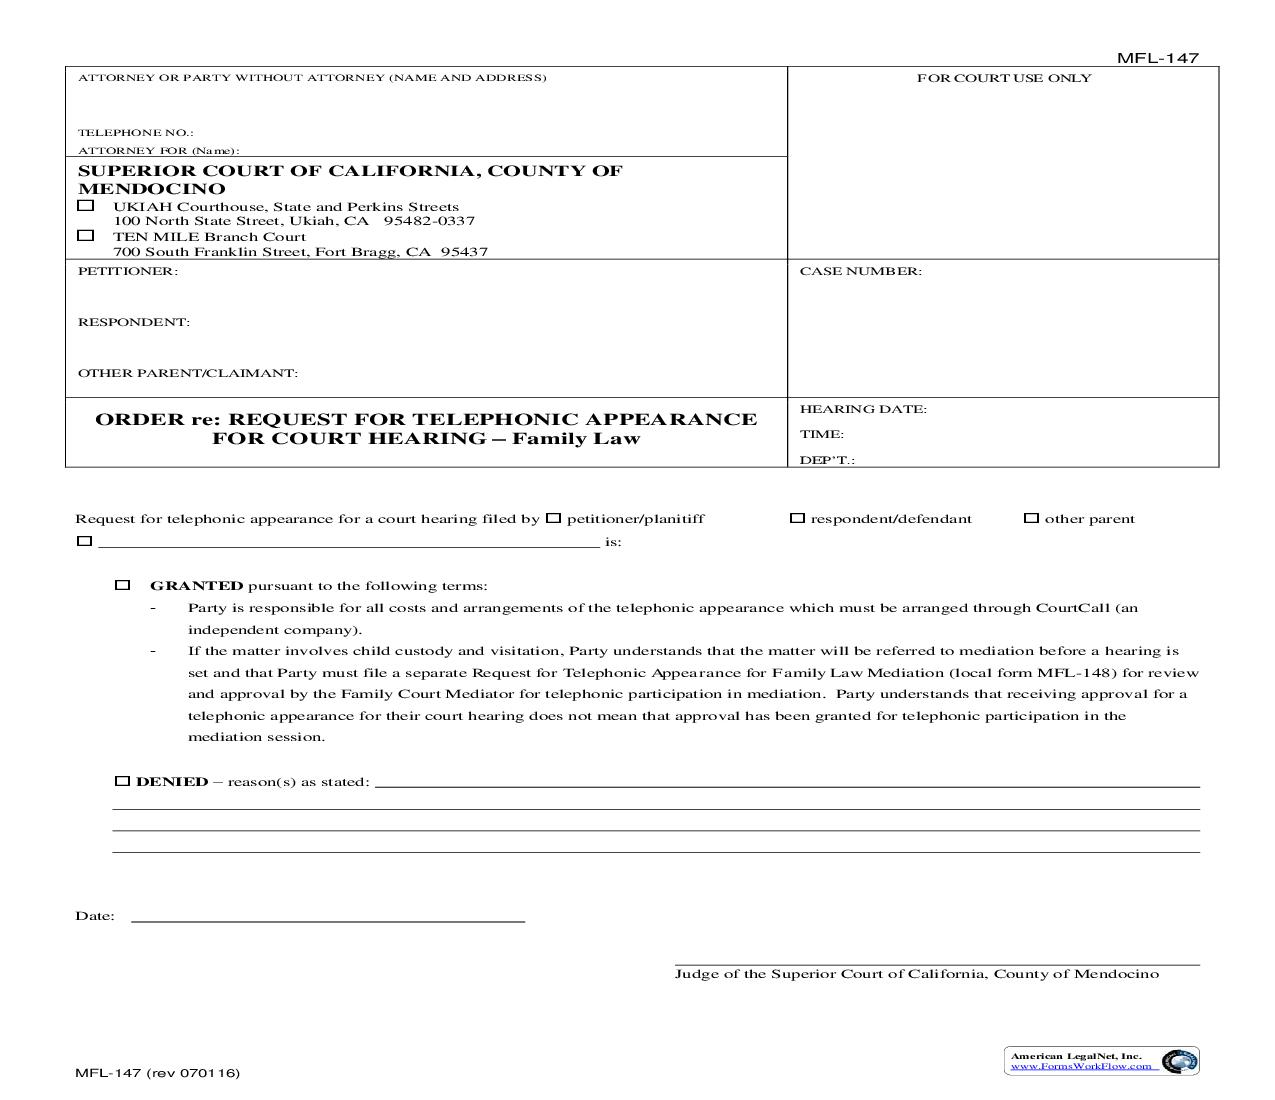 Order Re Request For Telephone Appearance For Evidentiary Hearing {MFL-147} | Pdf Fpdf Doc Docx | California